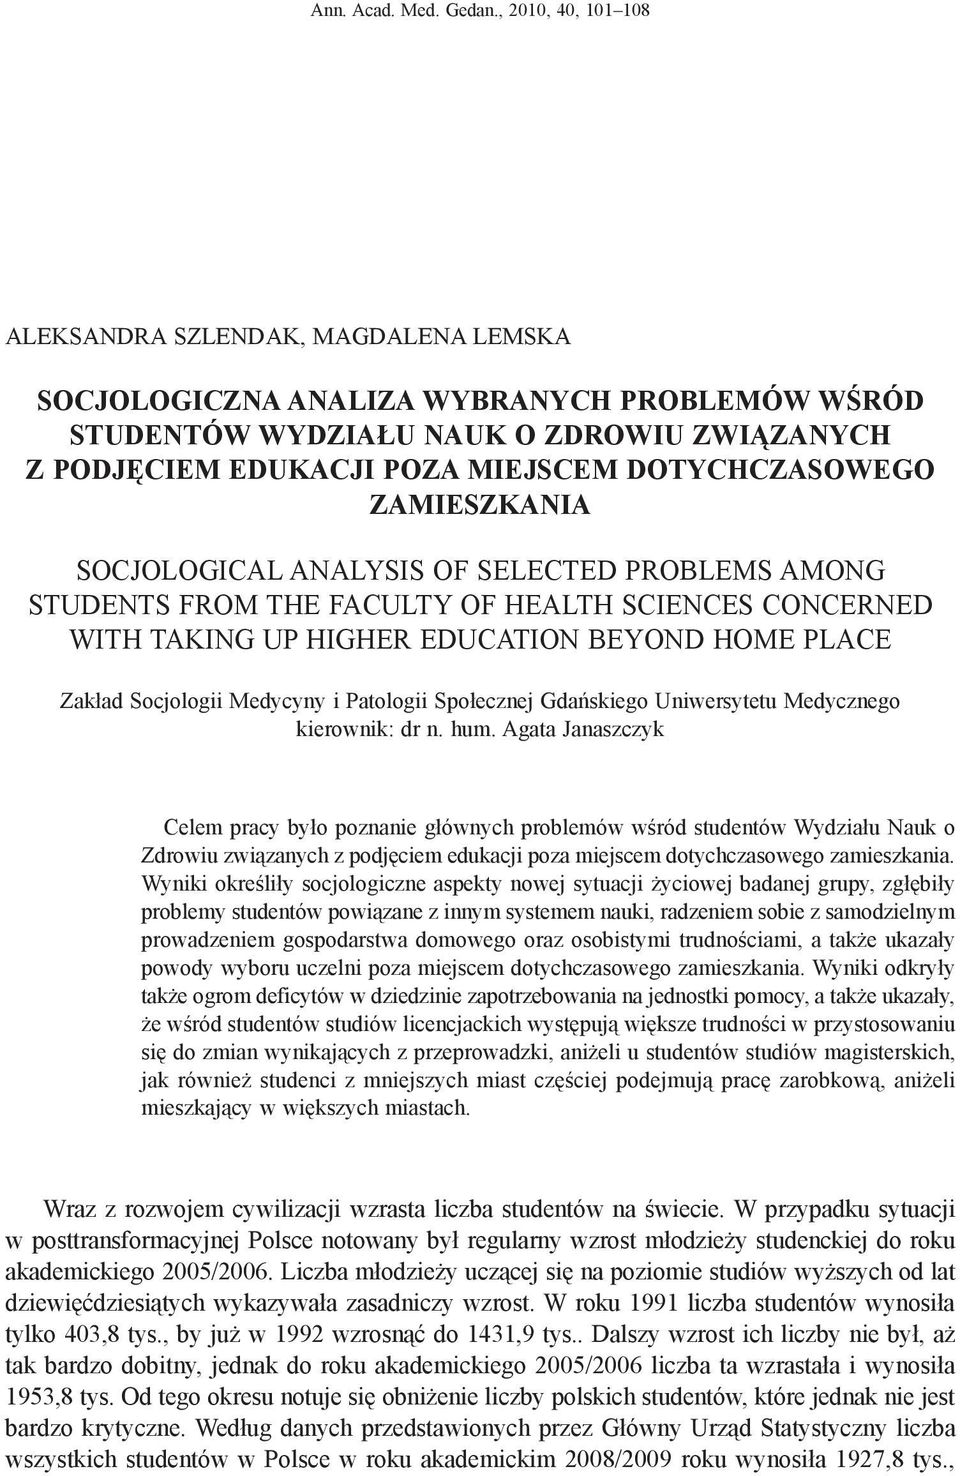 dotychczasowego zamieszkania Socjological analysis of selected problems among students from the Faculty of Health Sciences concerned with taking up higher education beyond home place Zakład